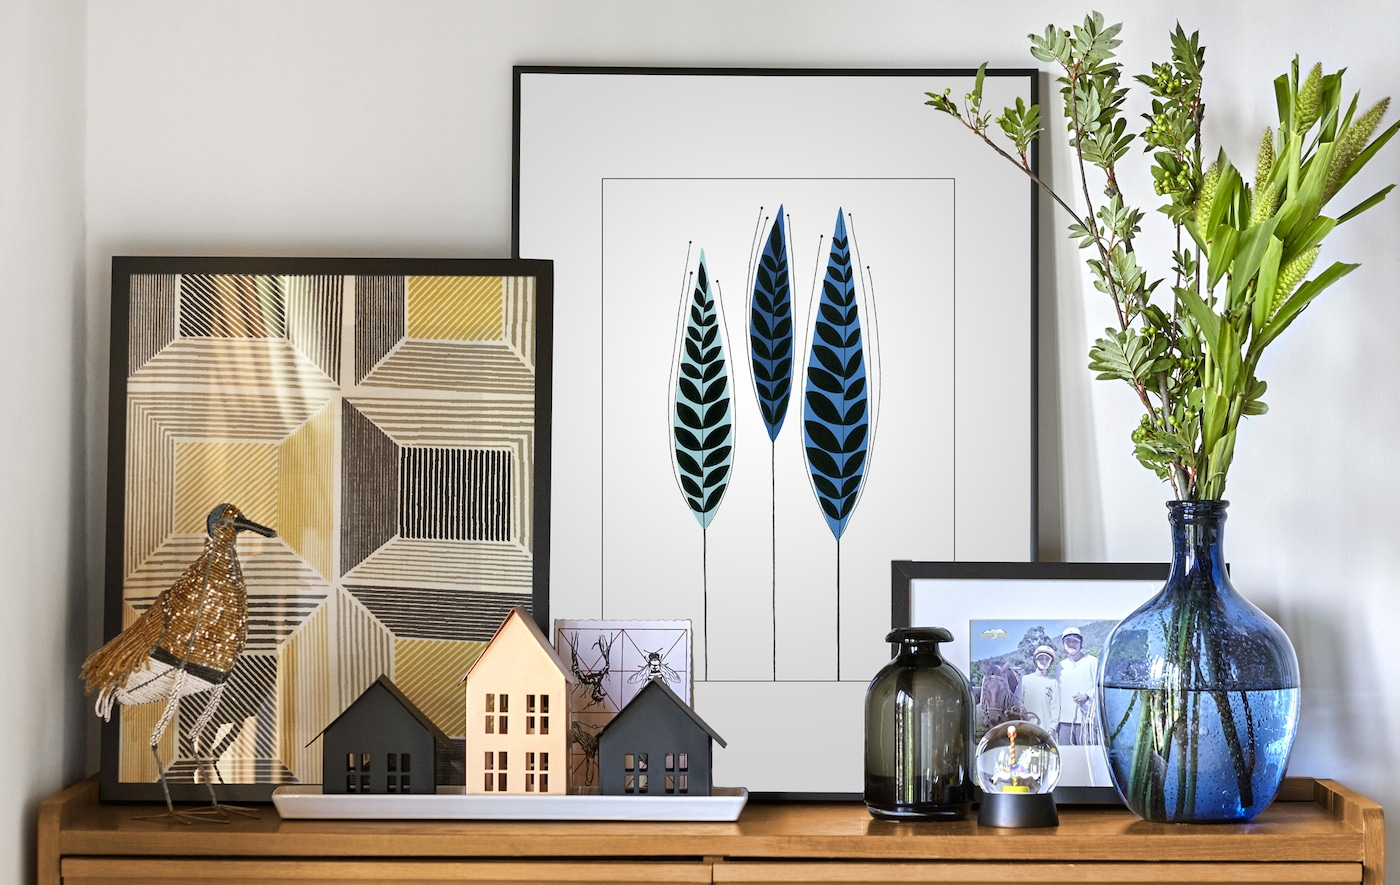 Layered pictures, ornaments and vases.